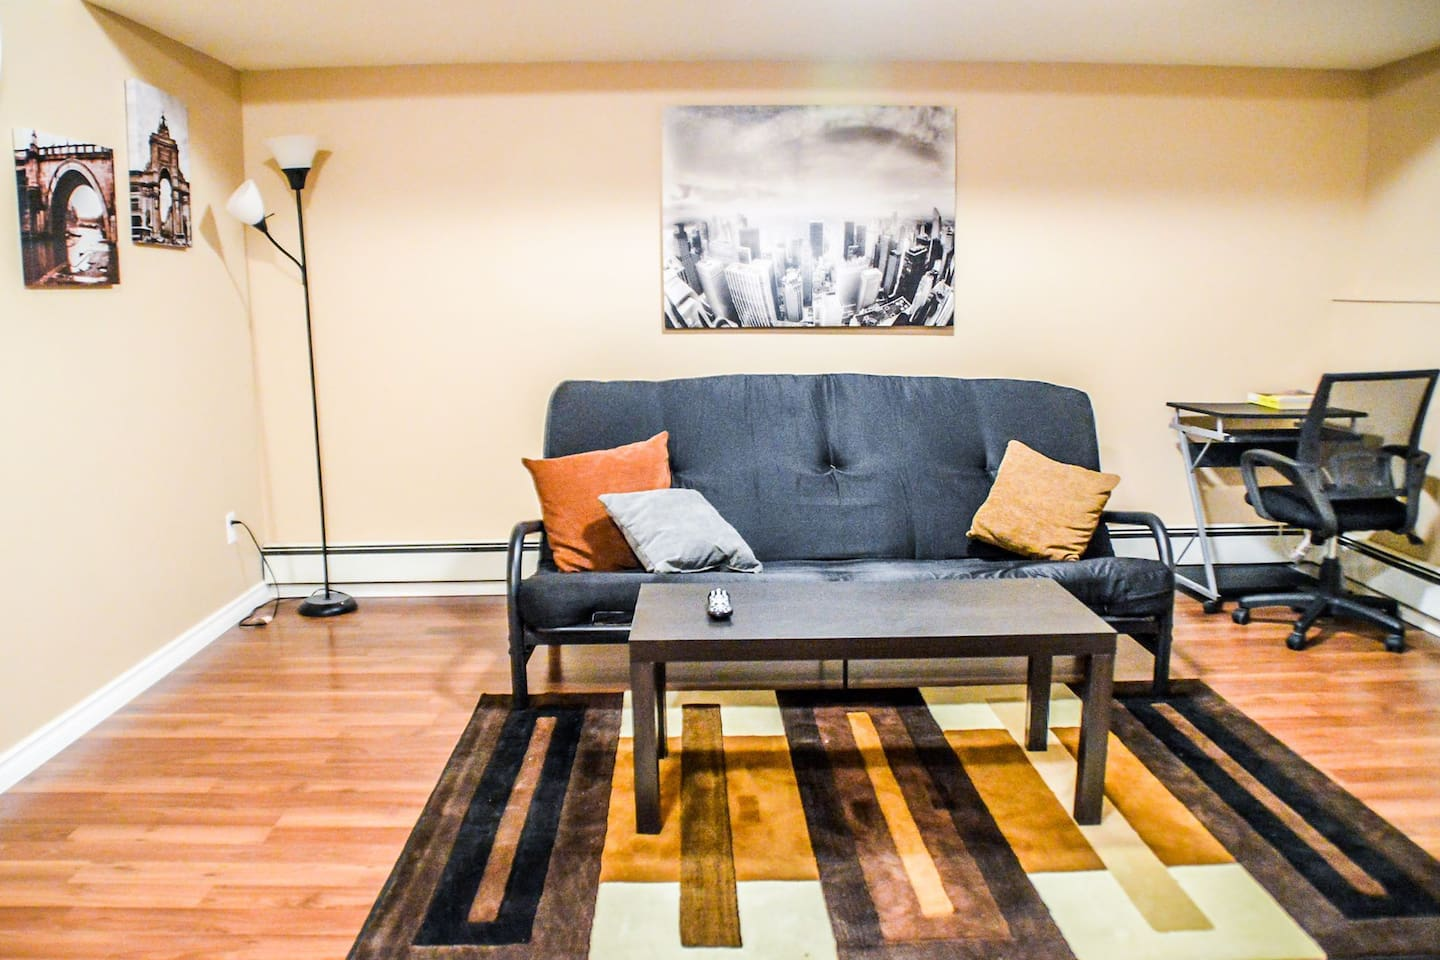 Living room with futon and desk